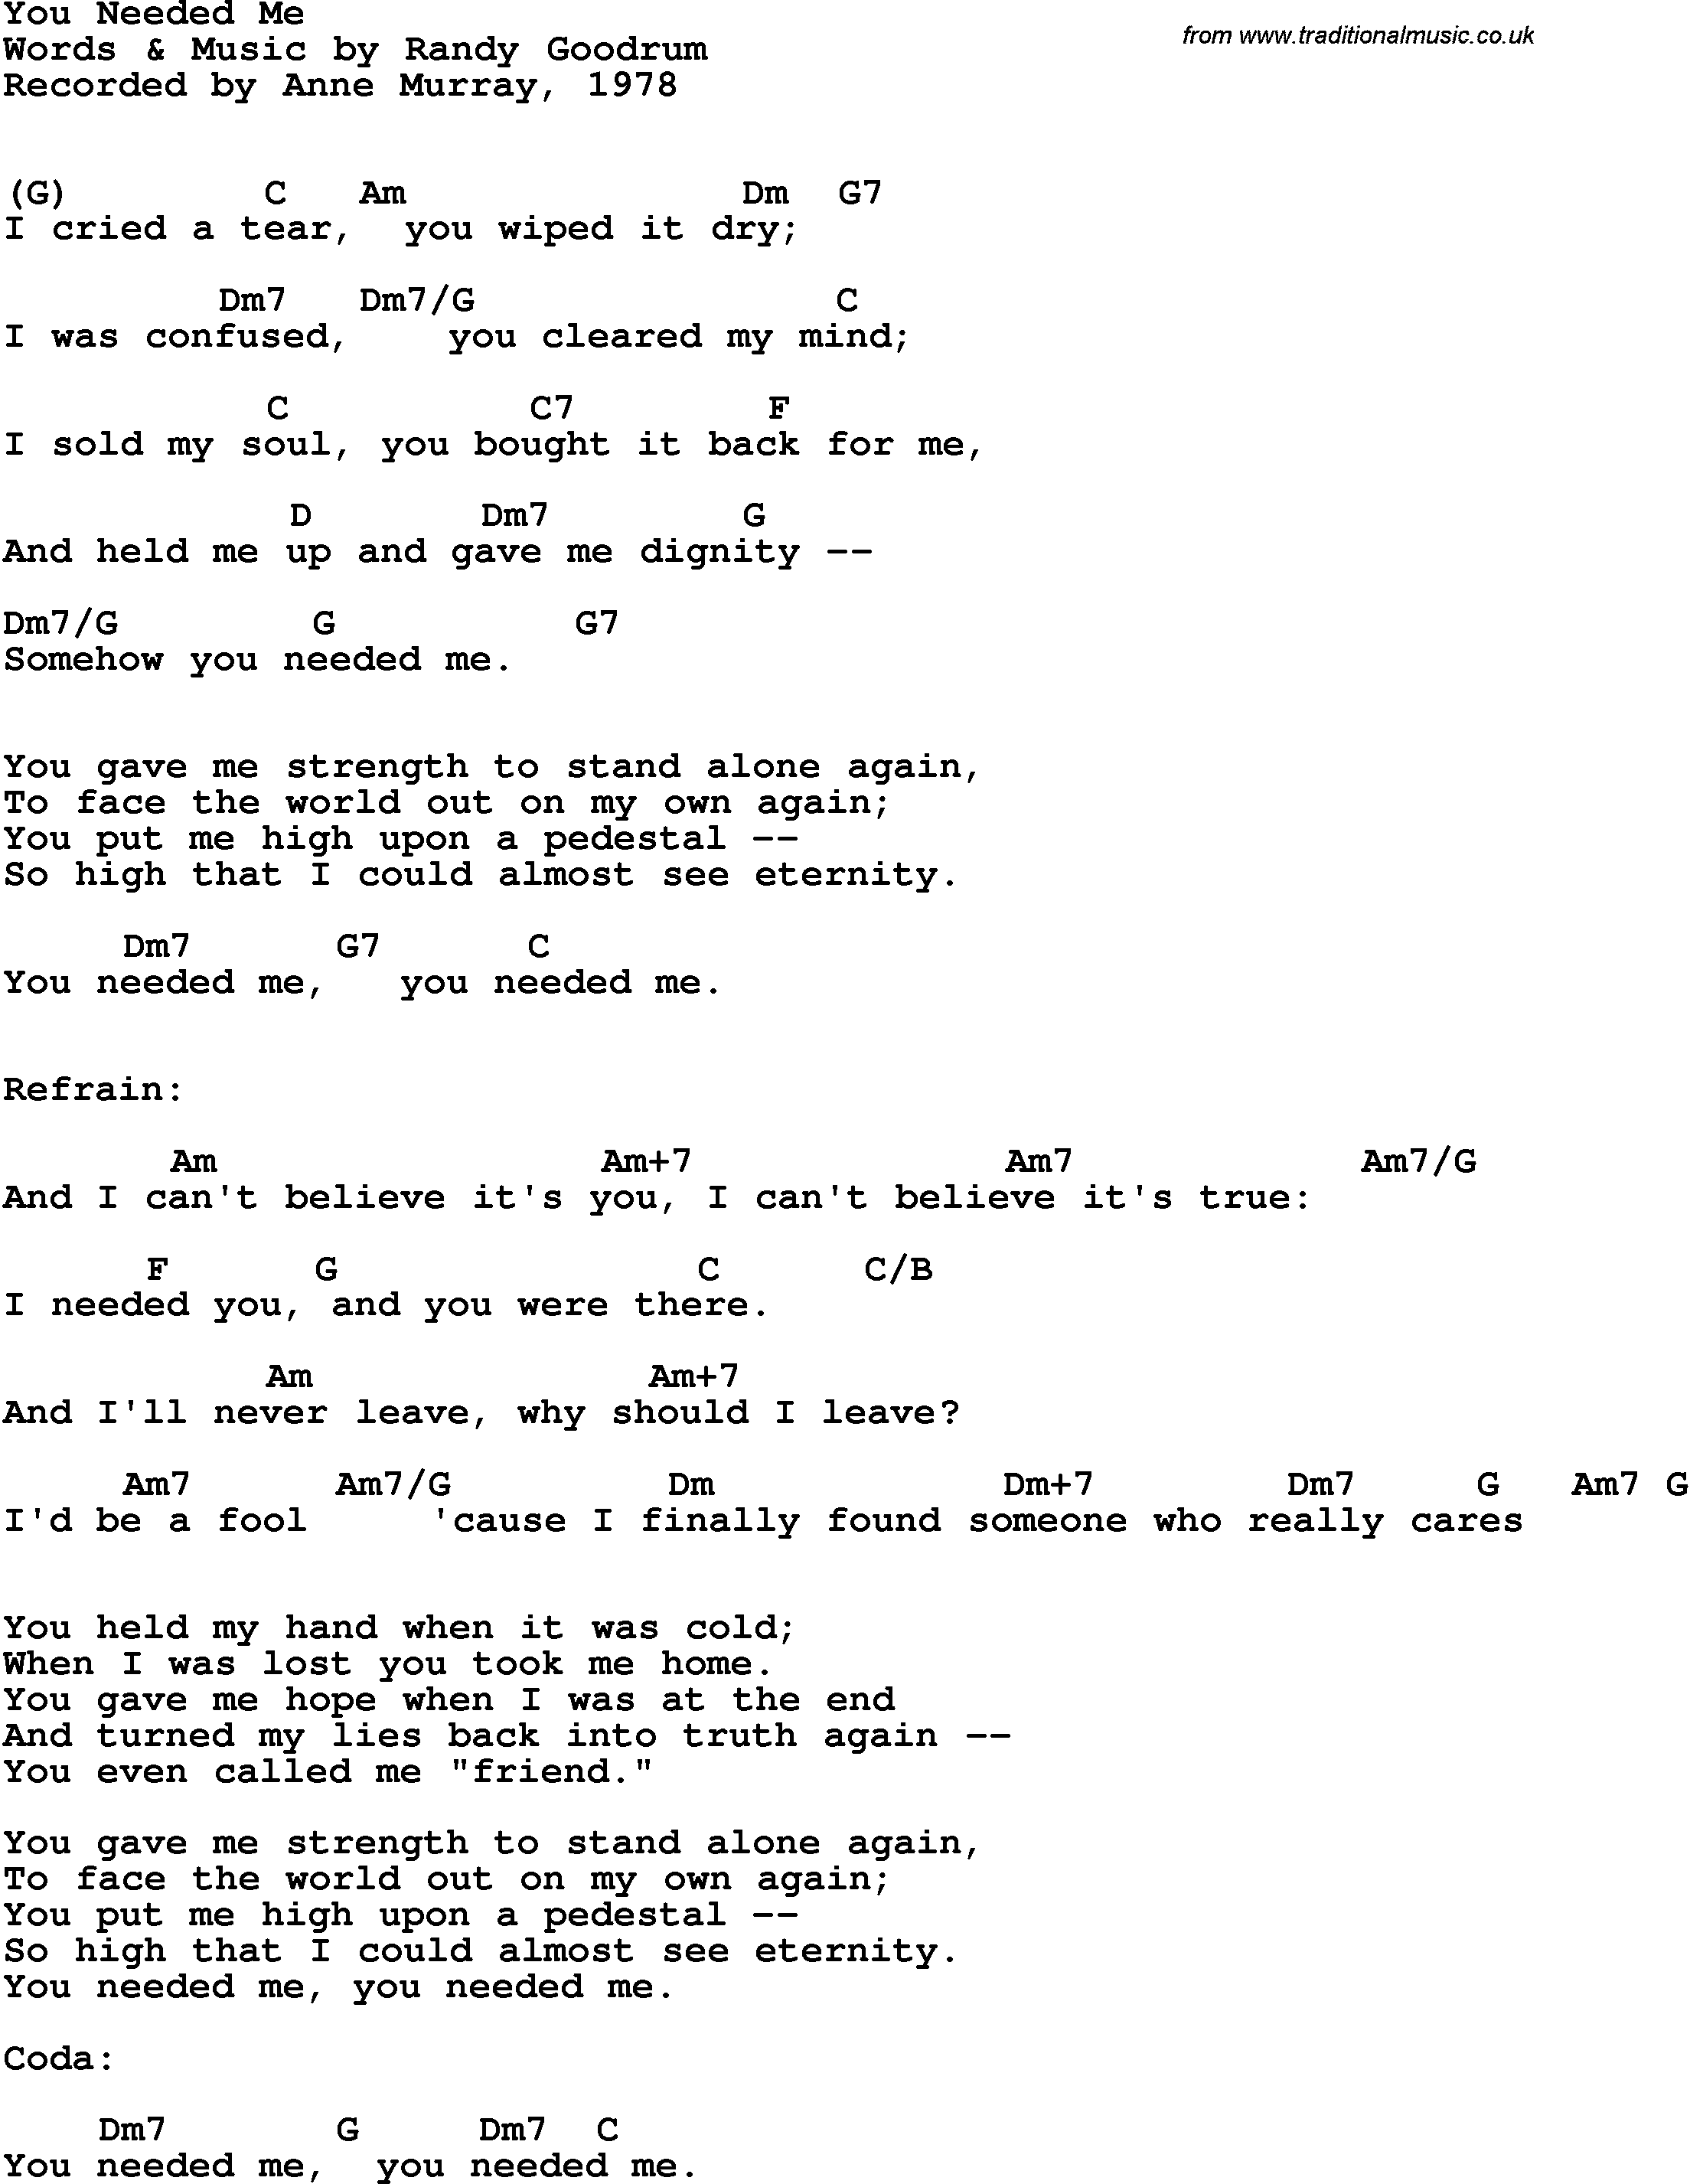 Song lyrics with guitar chords for You Needed Me - Anne Murray, 1978